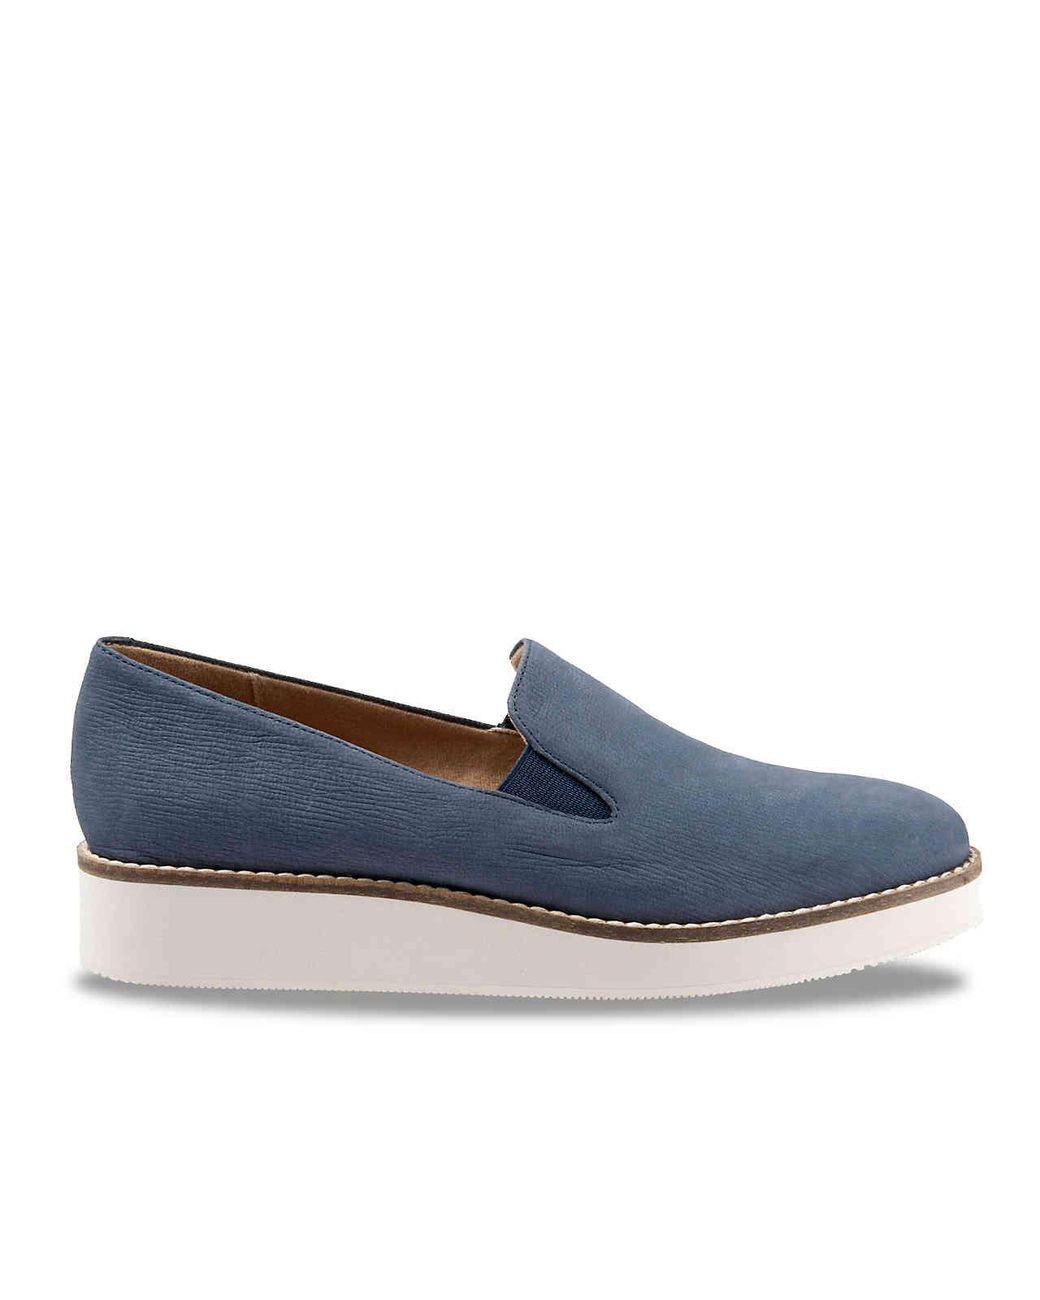 Softwalk Leather Whistle Wedge Loafer